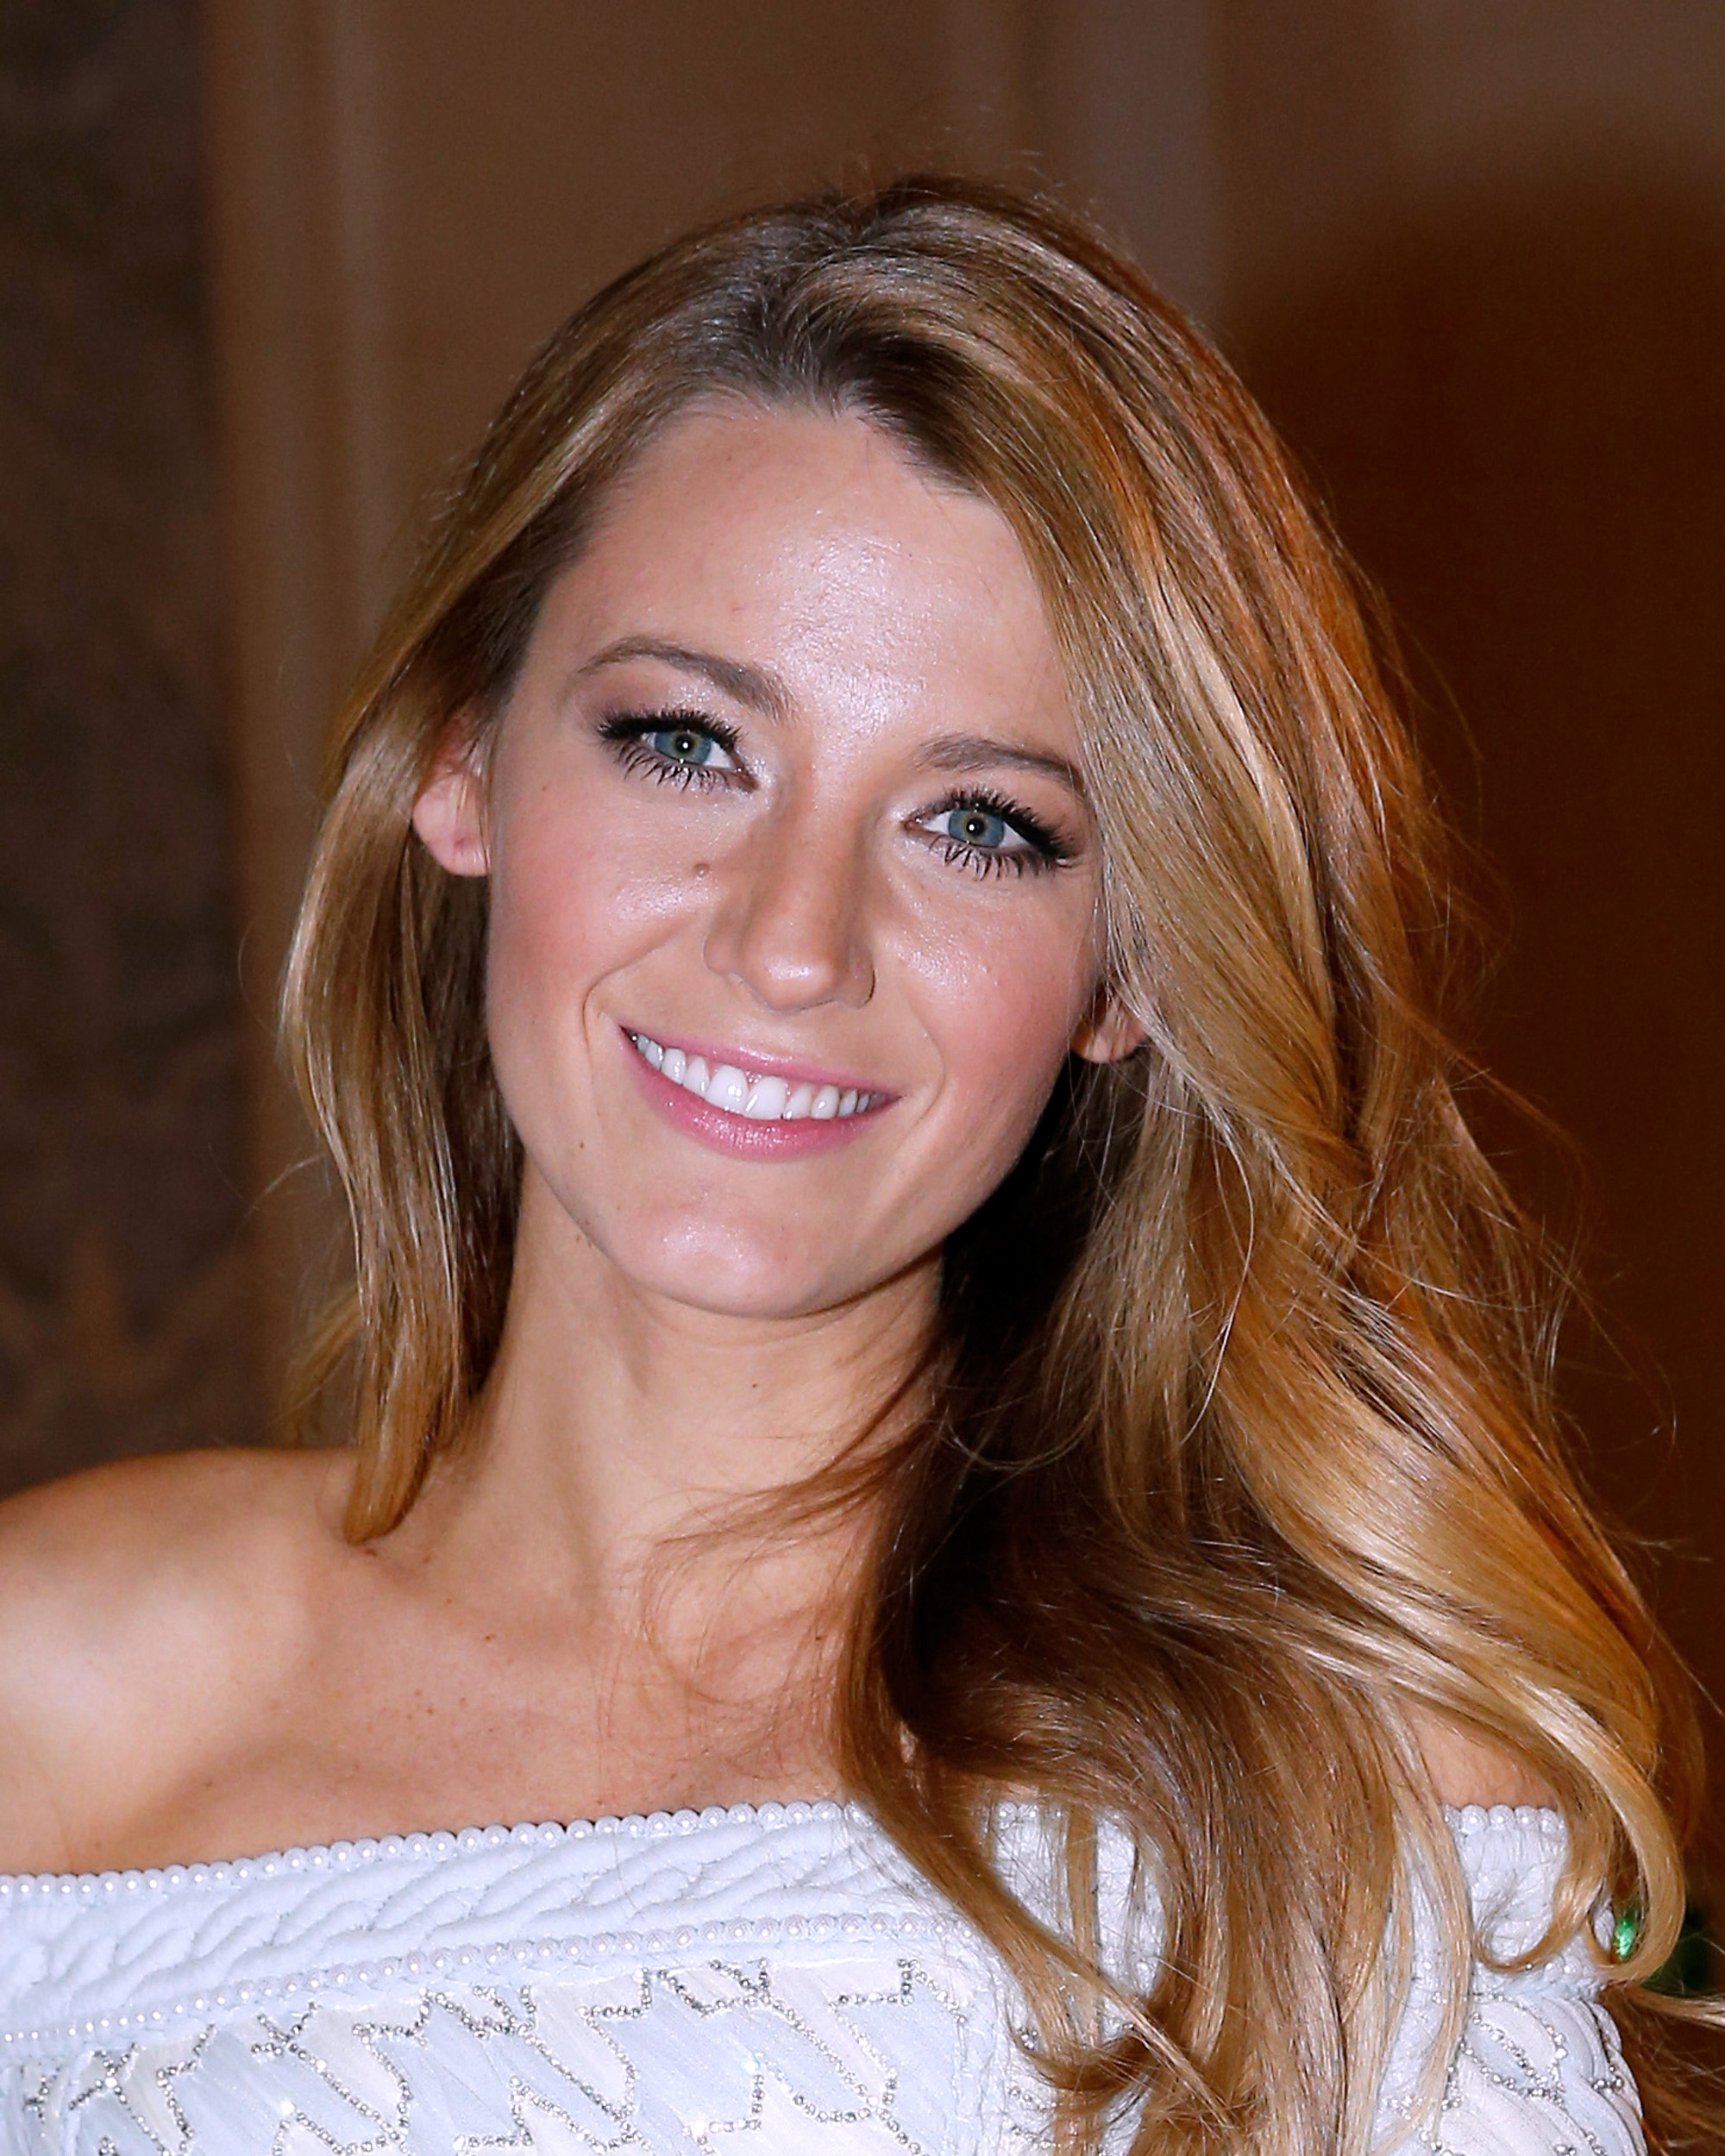 blake-lively-hair-blowout-1215.jpg